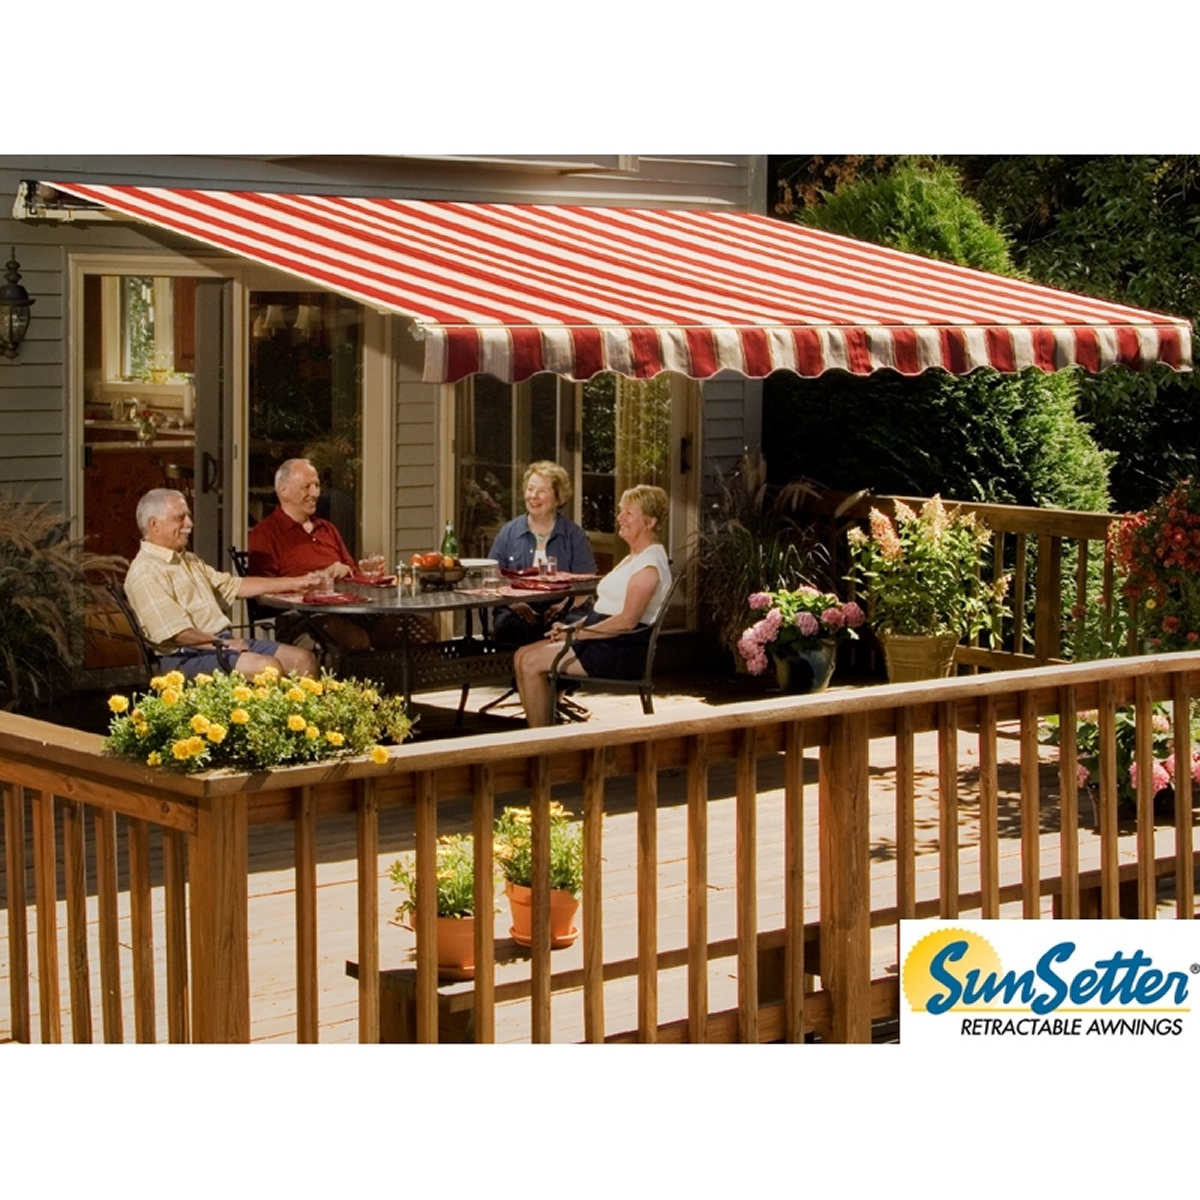 14 Motorized XL Retractable Awning with Woven Acrylic Fabric